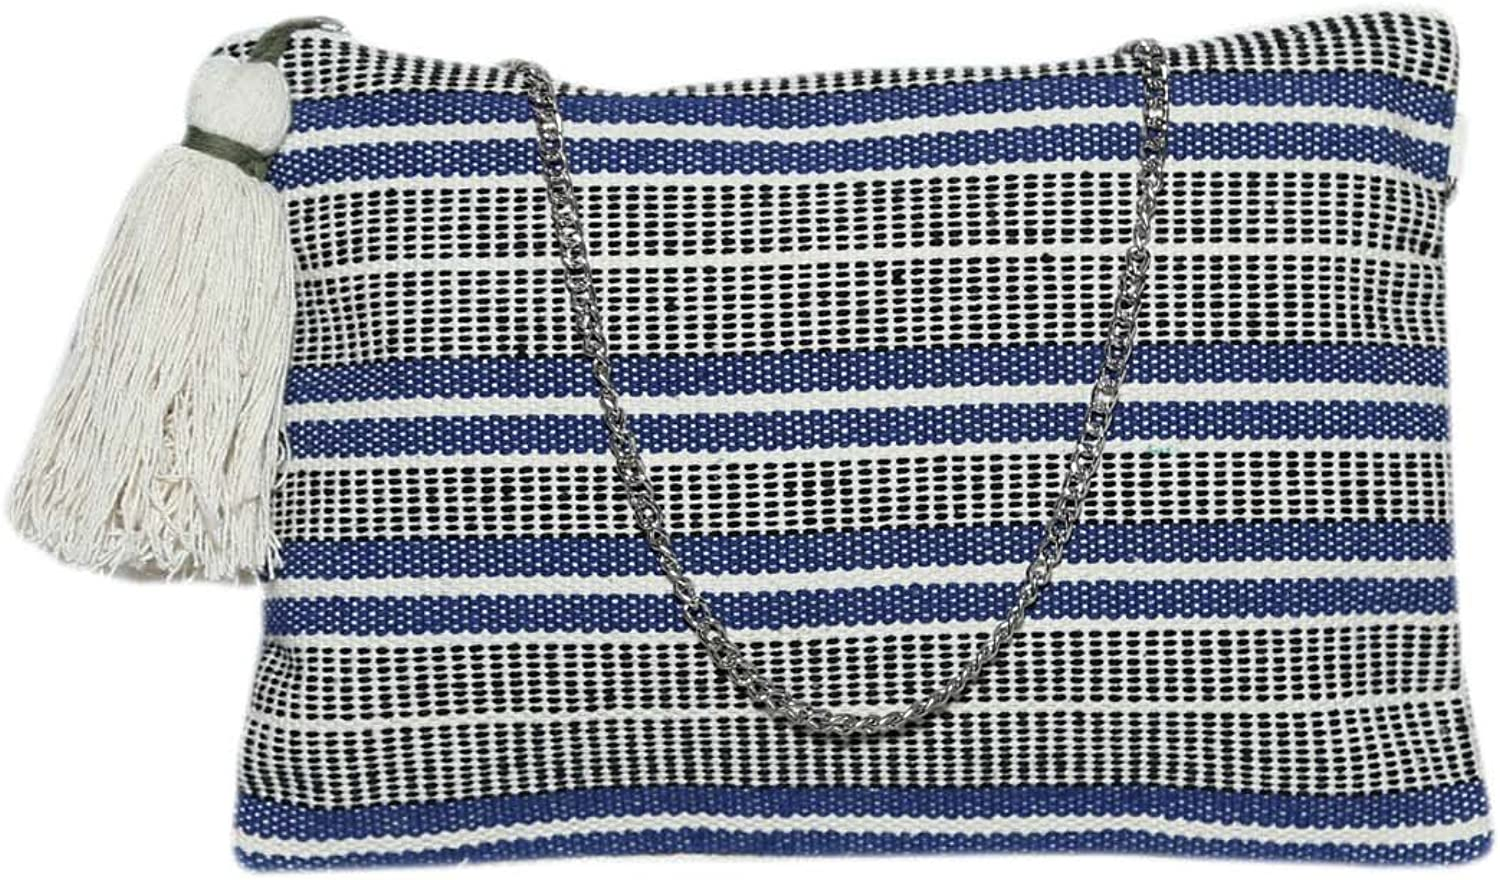 Diwaah Women's Handcrafted Embroidered Sling Bag